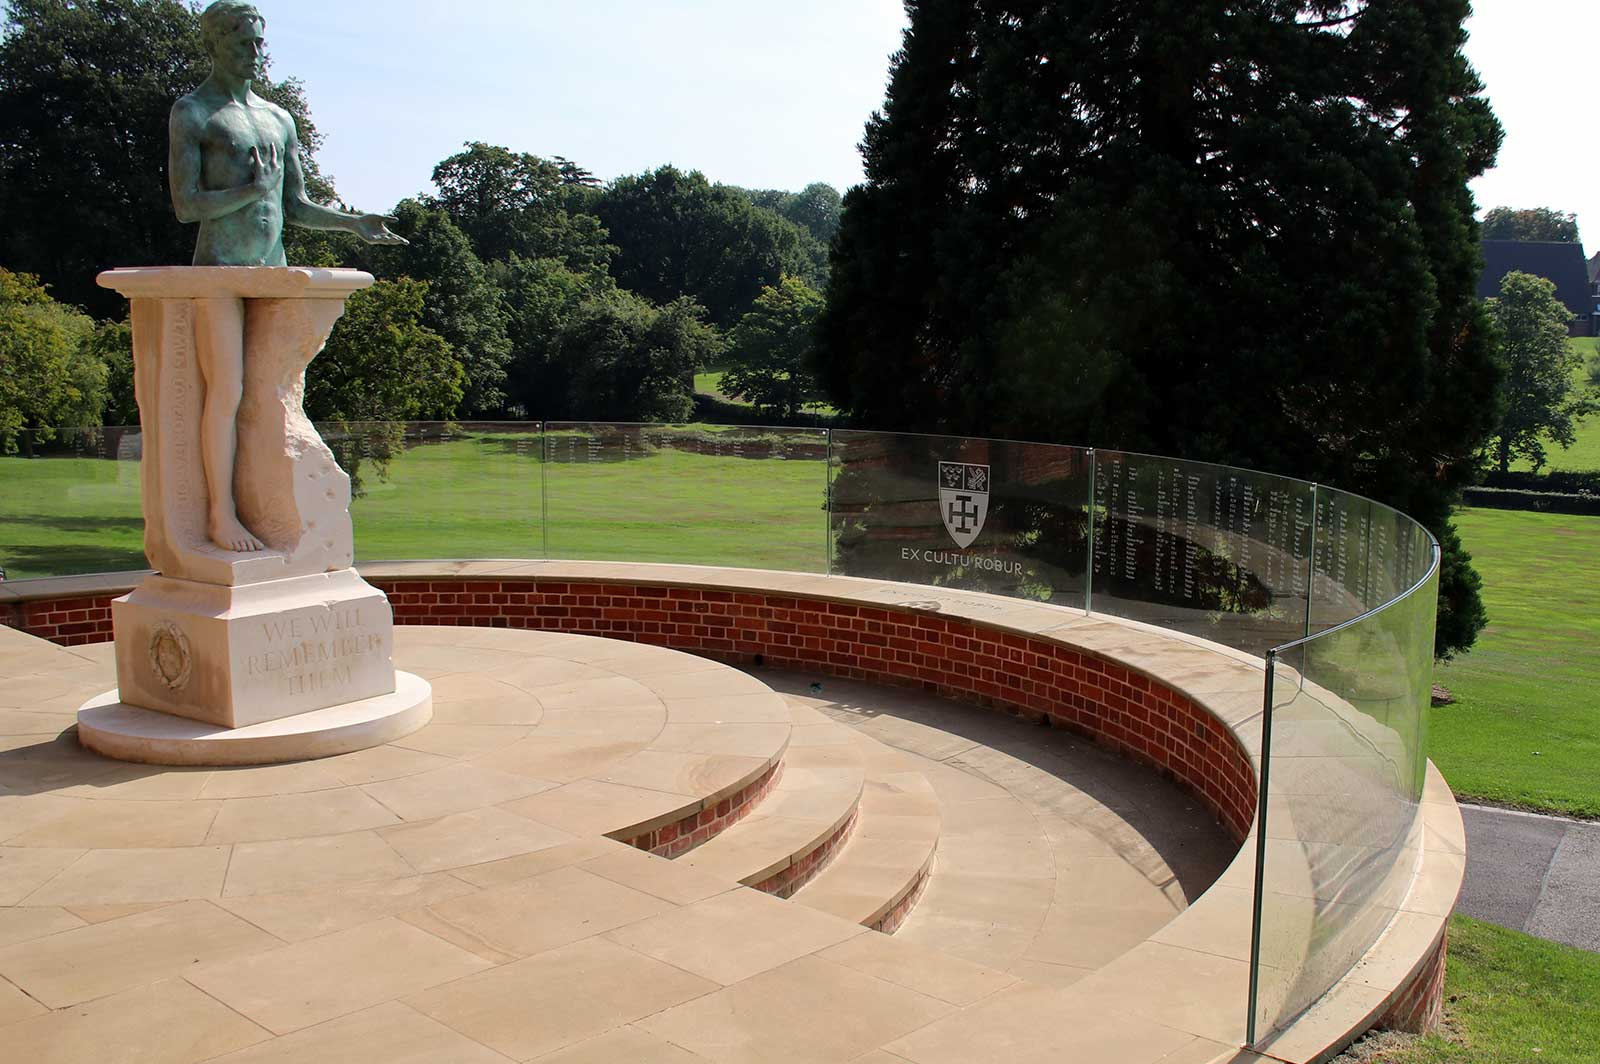 External Curved Glass Balustrades with War Memorial Laminated Glass Signage